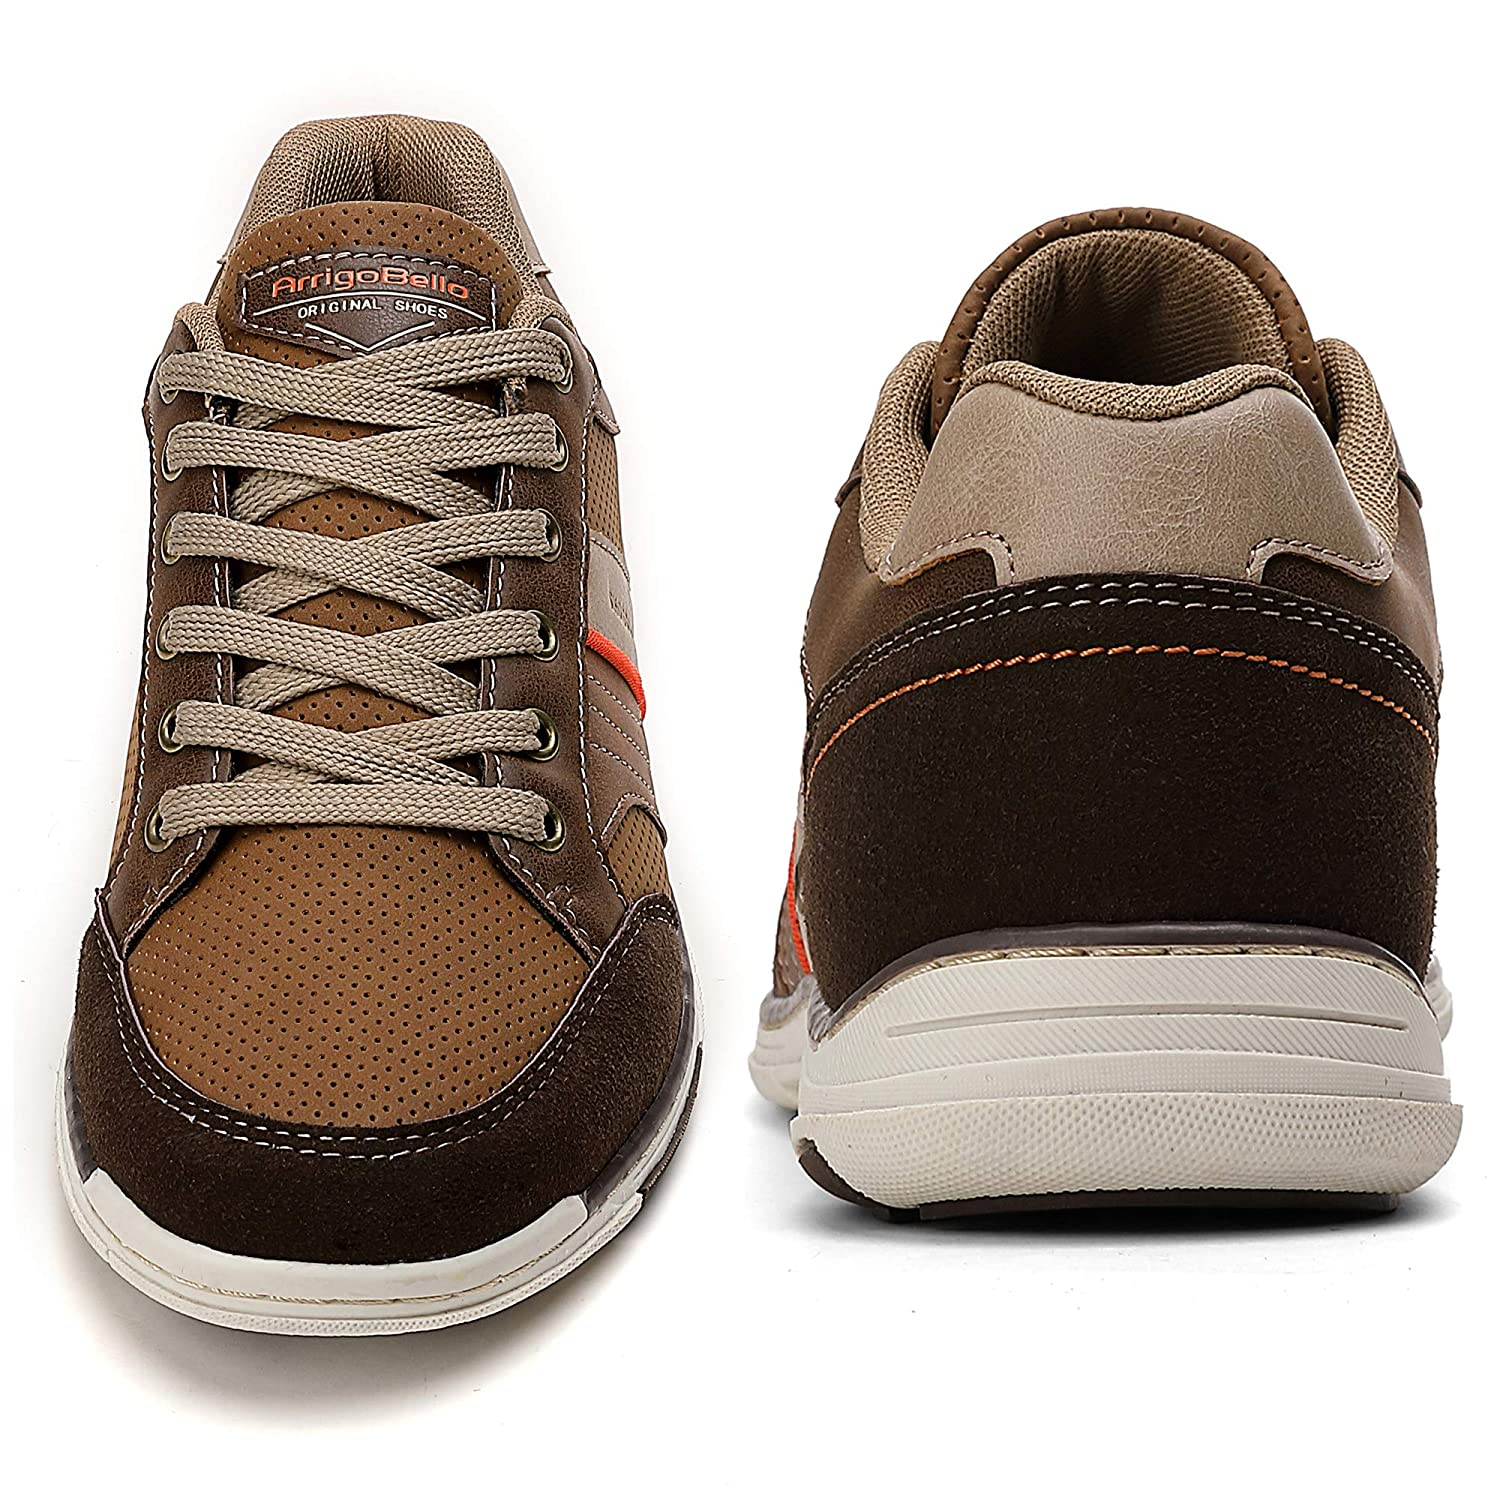 9.5 UK, A9099-Brown AX BOXING Mens Casual Shoes Lace-up Shoes Loafer Flats Classic Non-Slip Walking Gym Shoe Trainers Sport Mens Sneakers Size 7-11